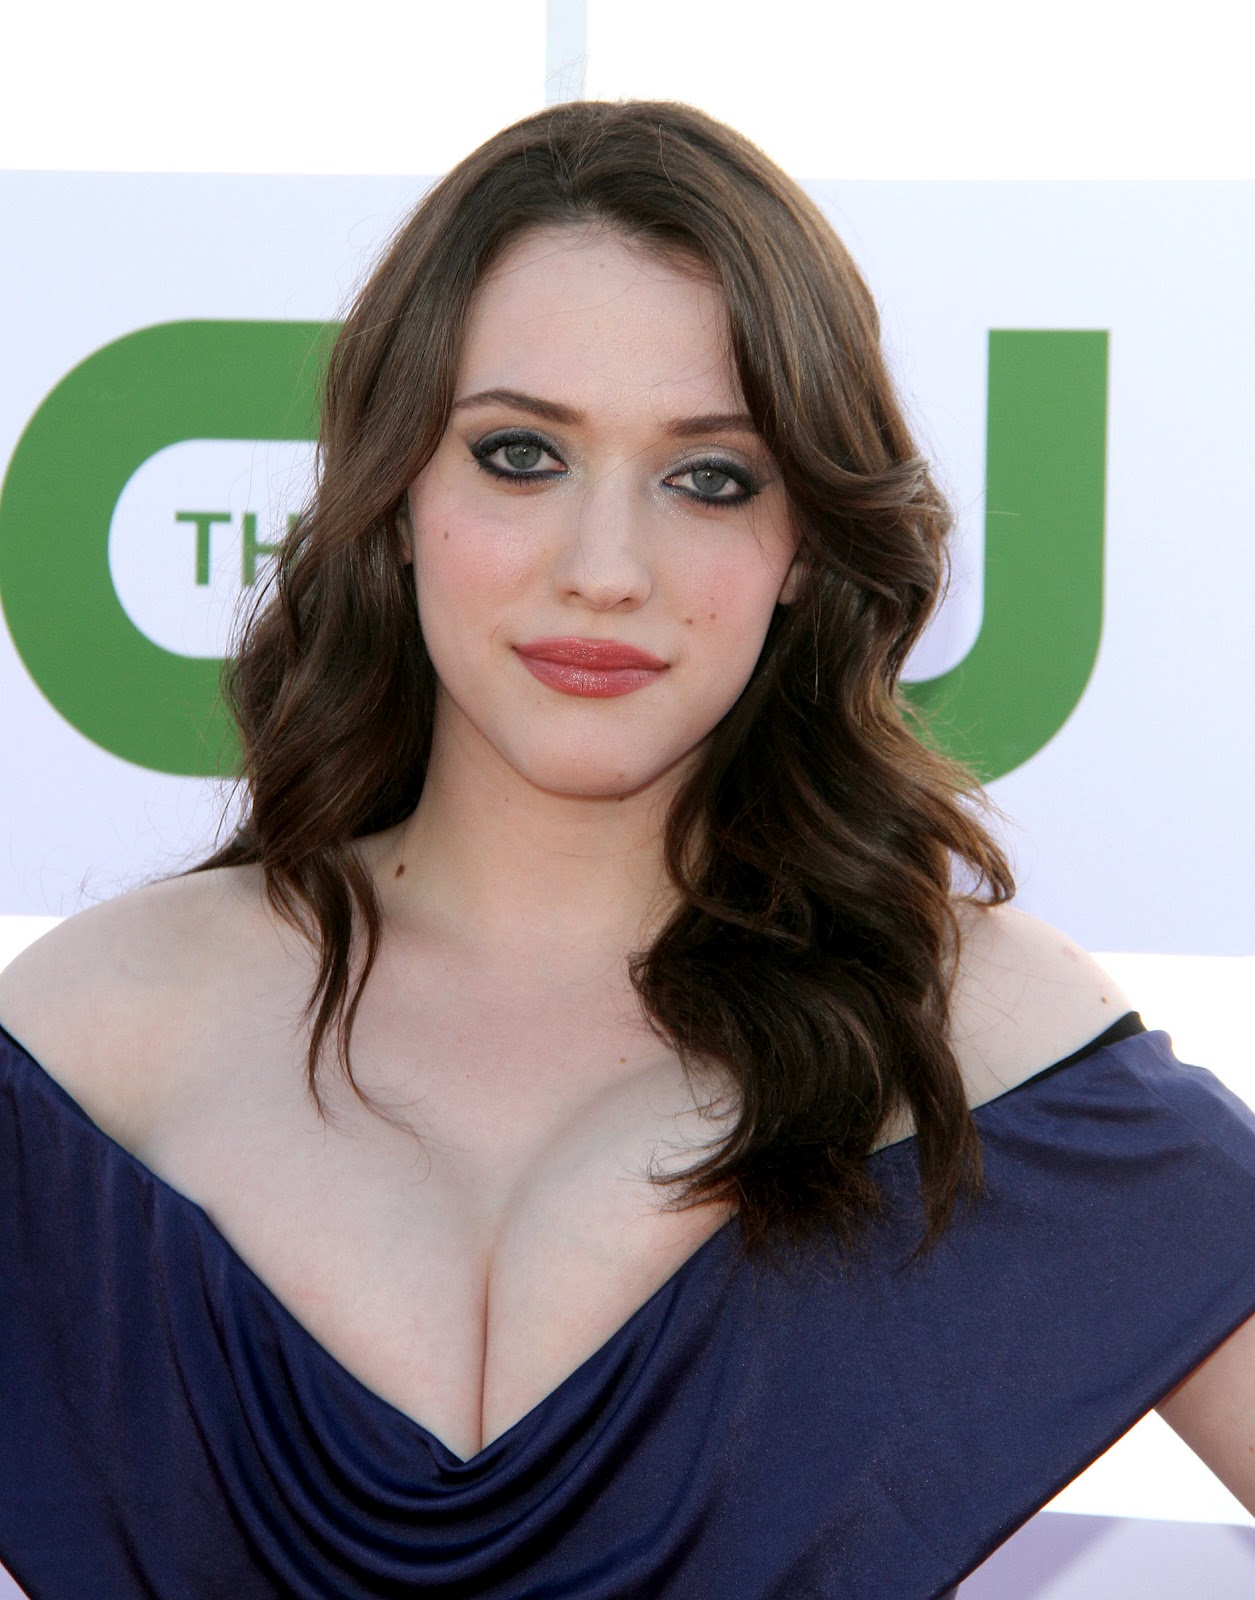 Kat Dennings Hot At Cbs Cw Showtime Tca Party In Beverly Hills